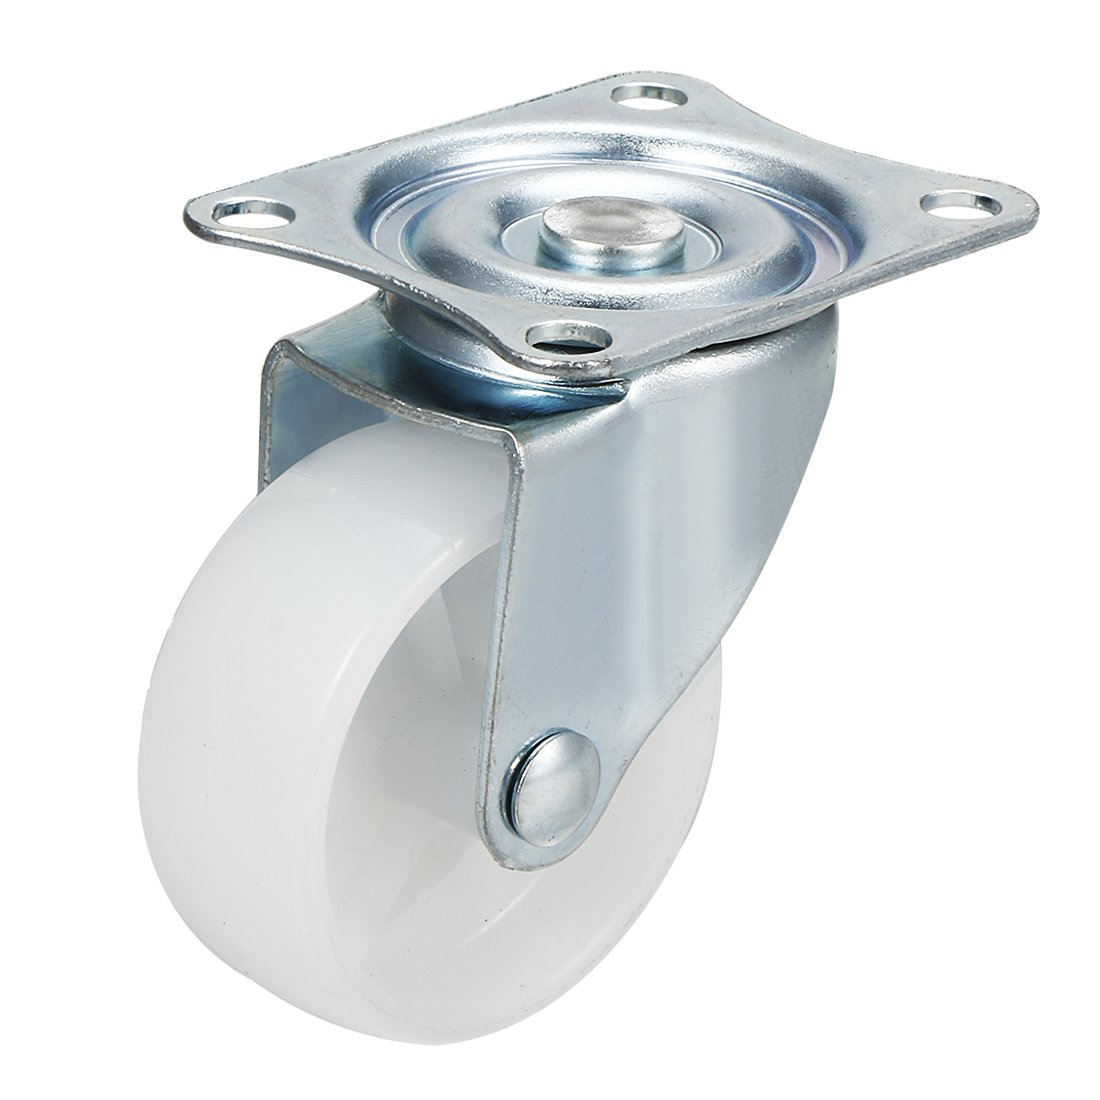 uxcell 2 Inch Swivel Casters Wheels PP Plastic Wheel Top Plate Mounted 66lb Load Capacity White